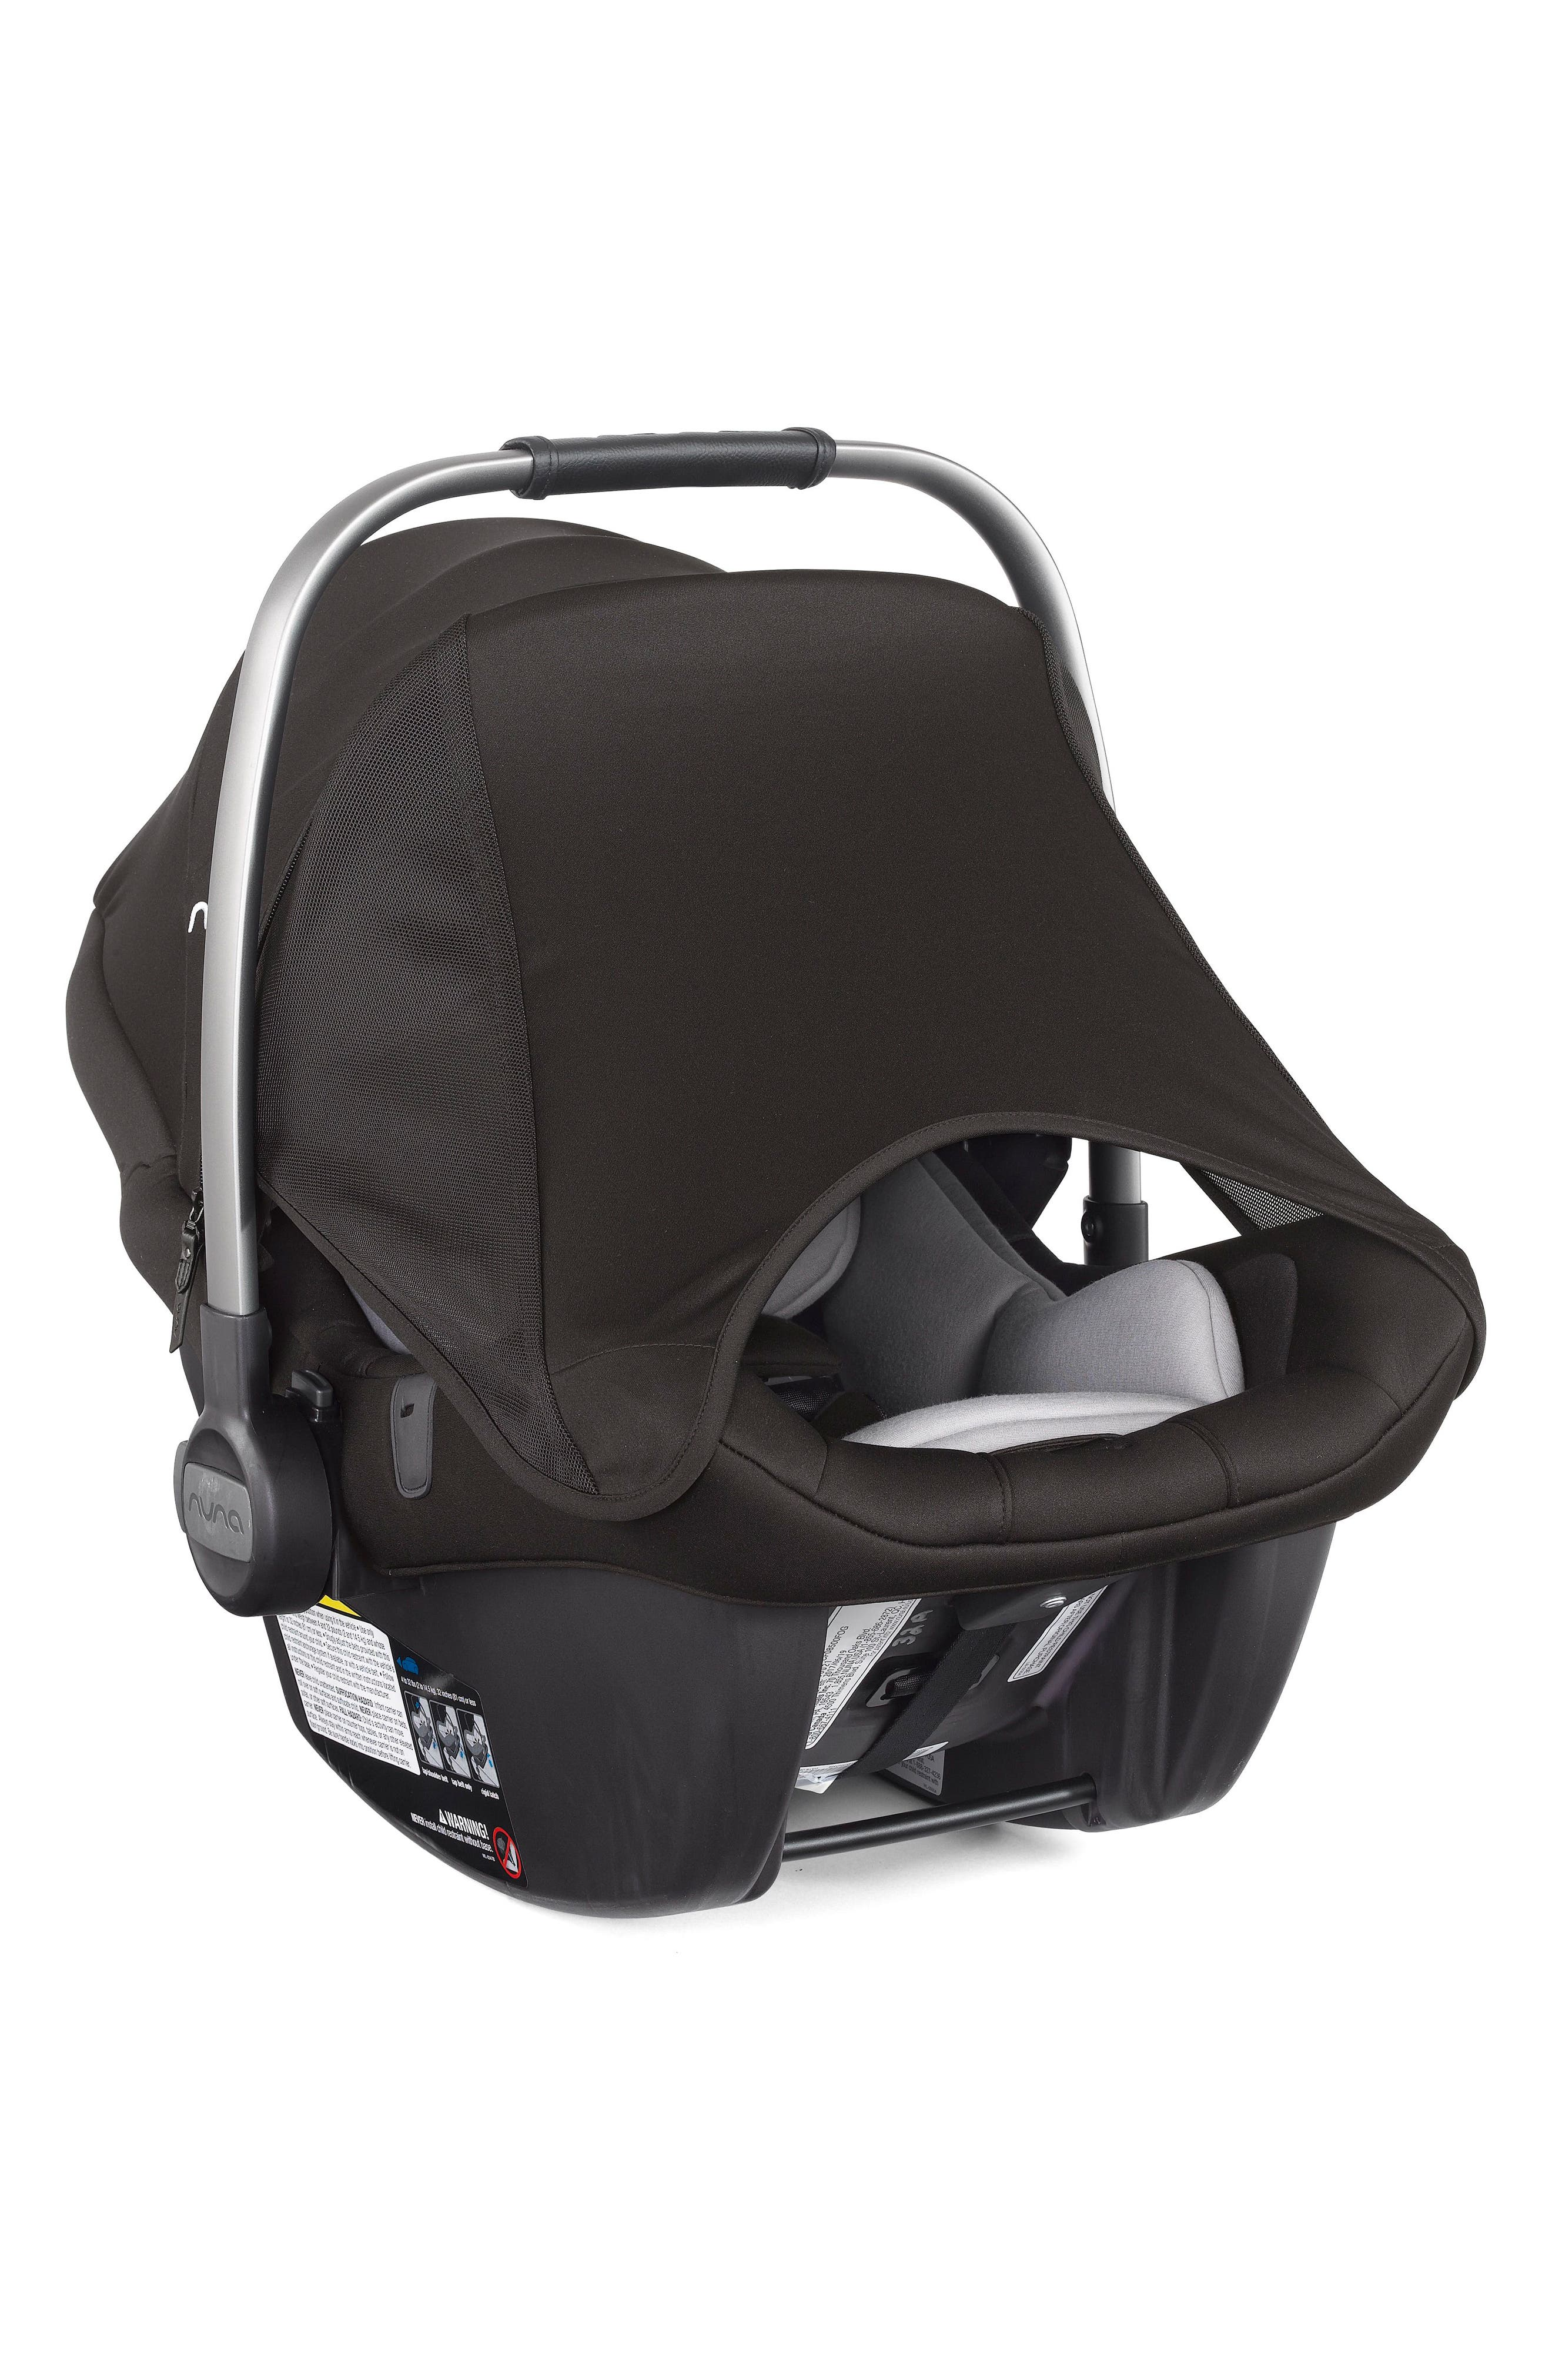 2017 PIPA<sup>™</sup> Lite LX Infant Car Seat & Base,                             Alternate thumbnail 13, color,                             Caviar